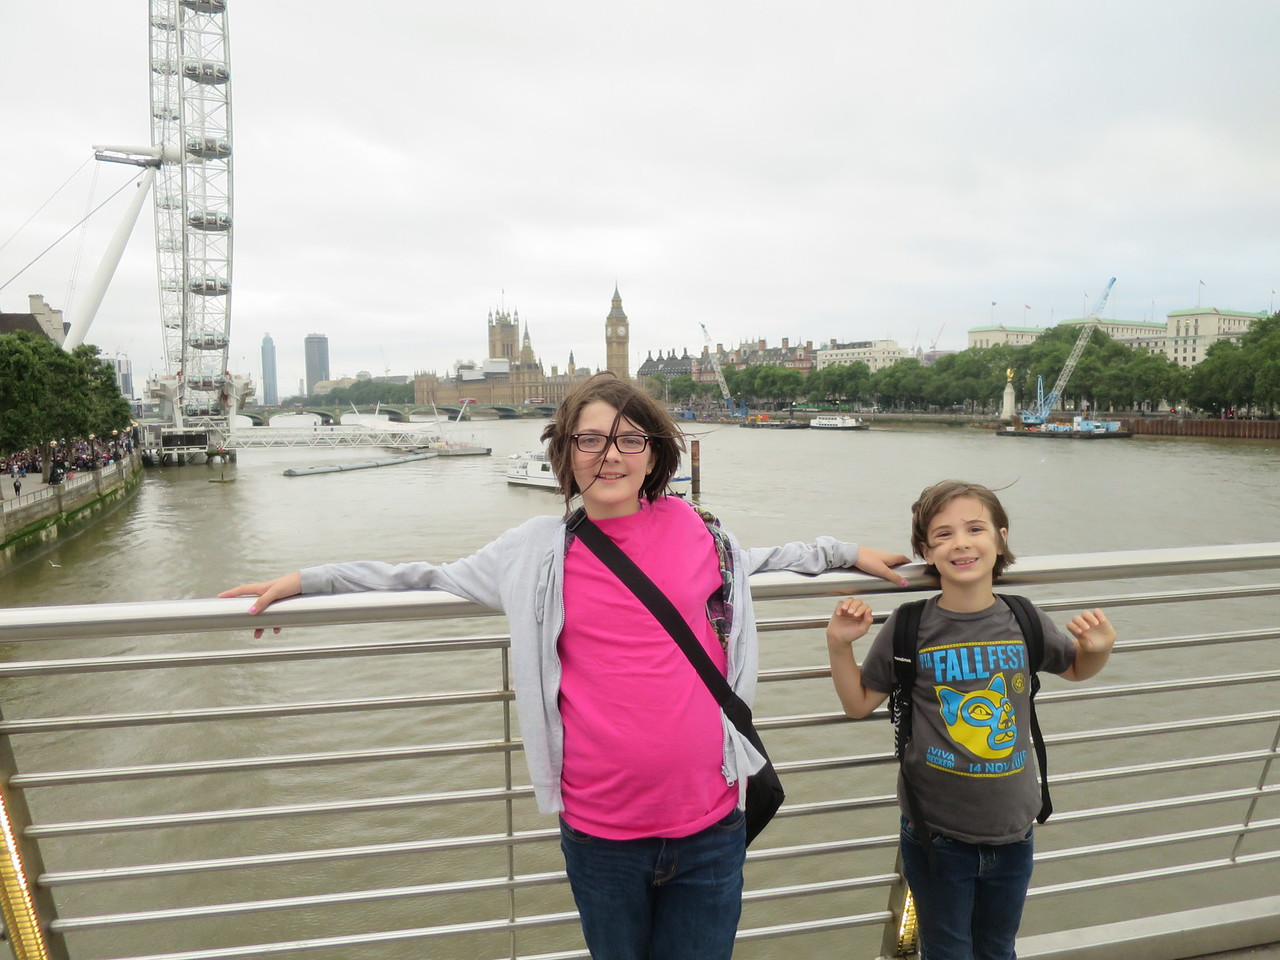 The girls on the Millenium Bridge with Parliament and the London Eye in the background